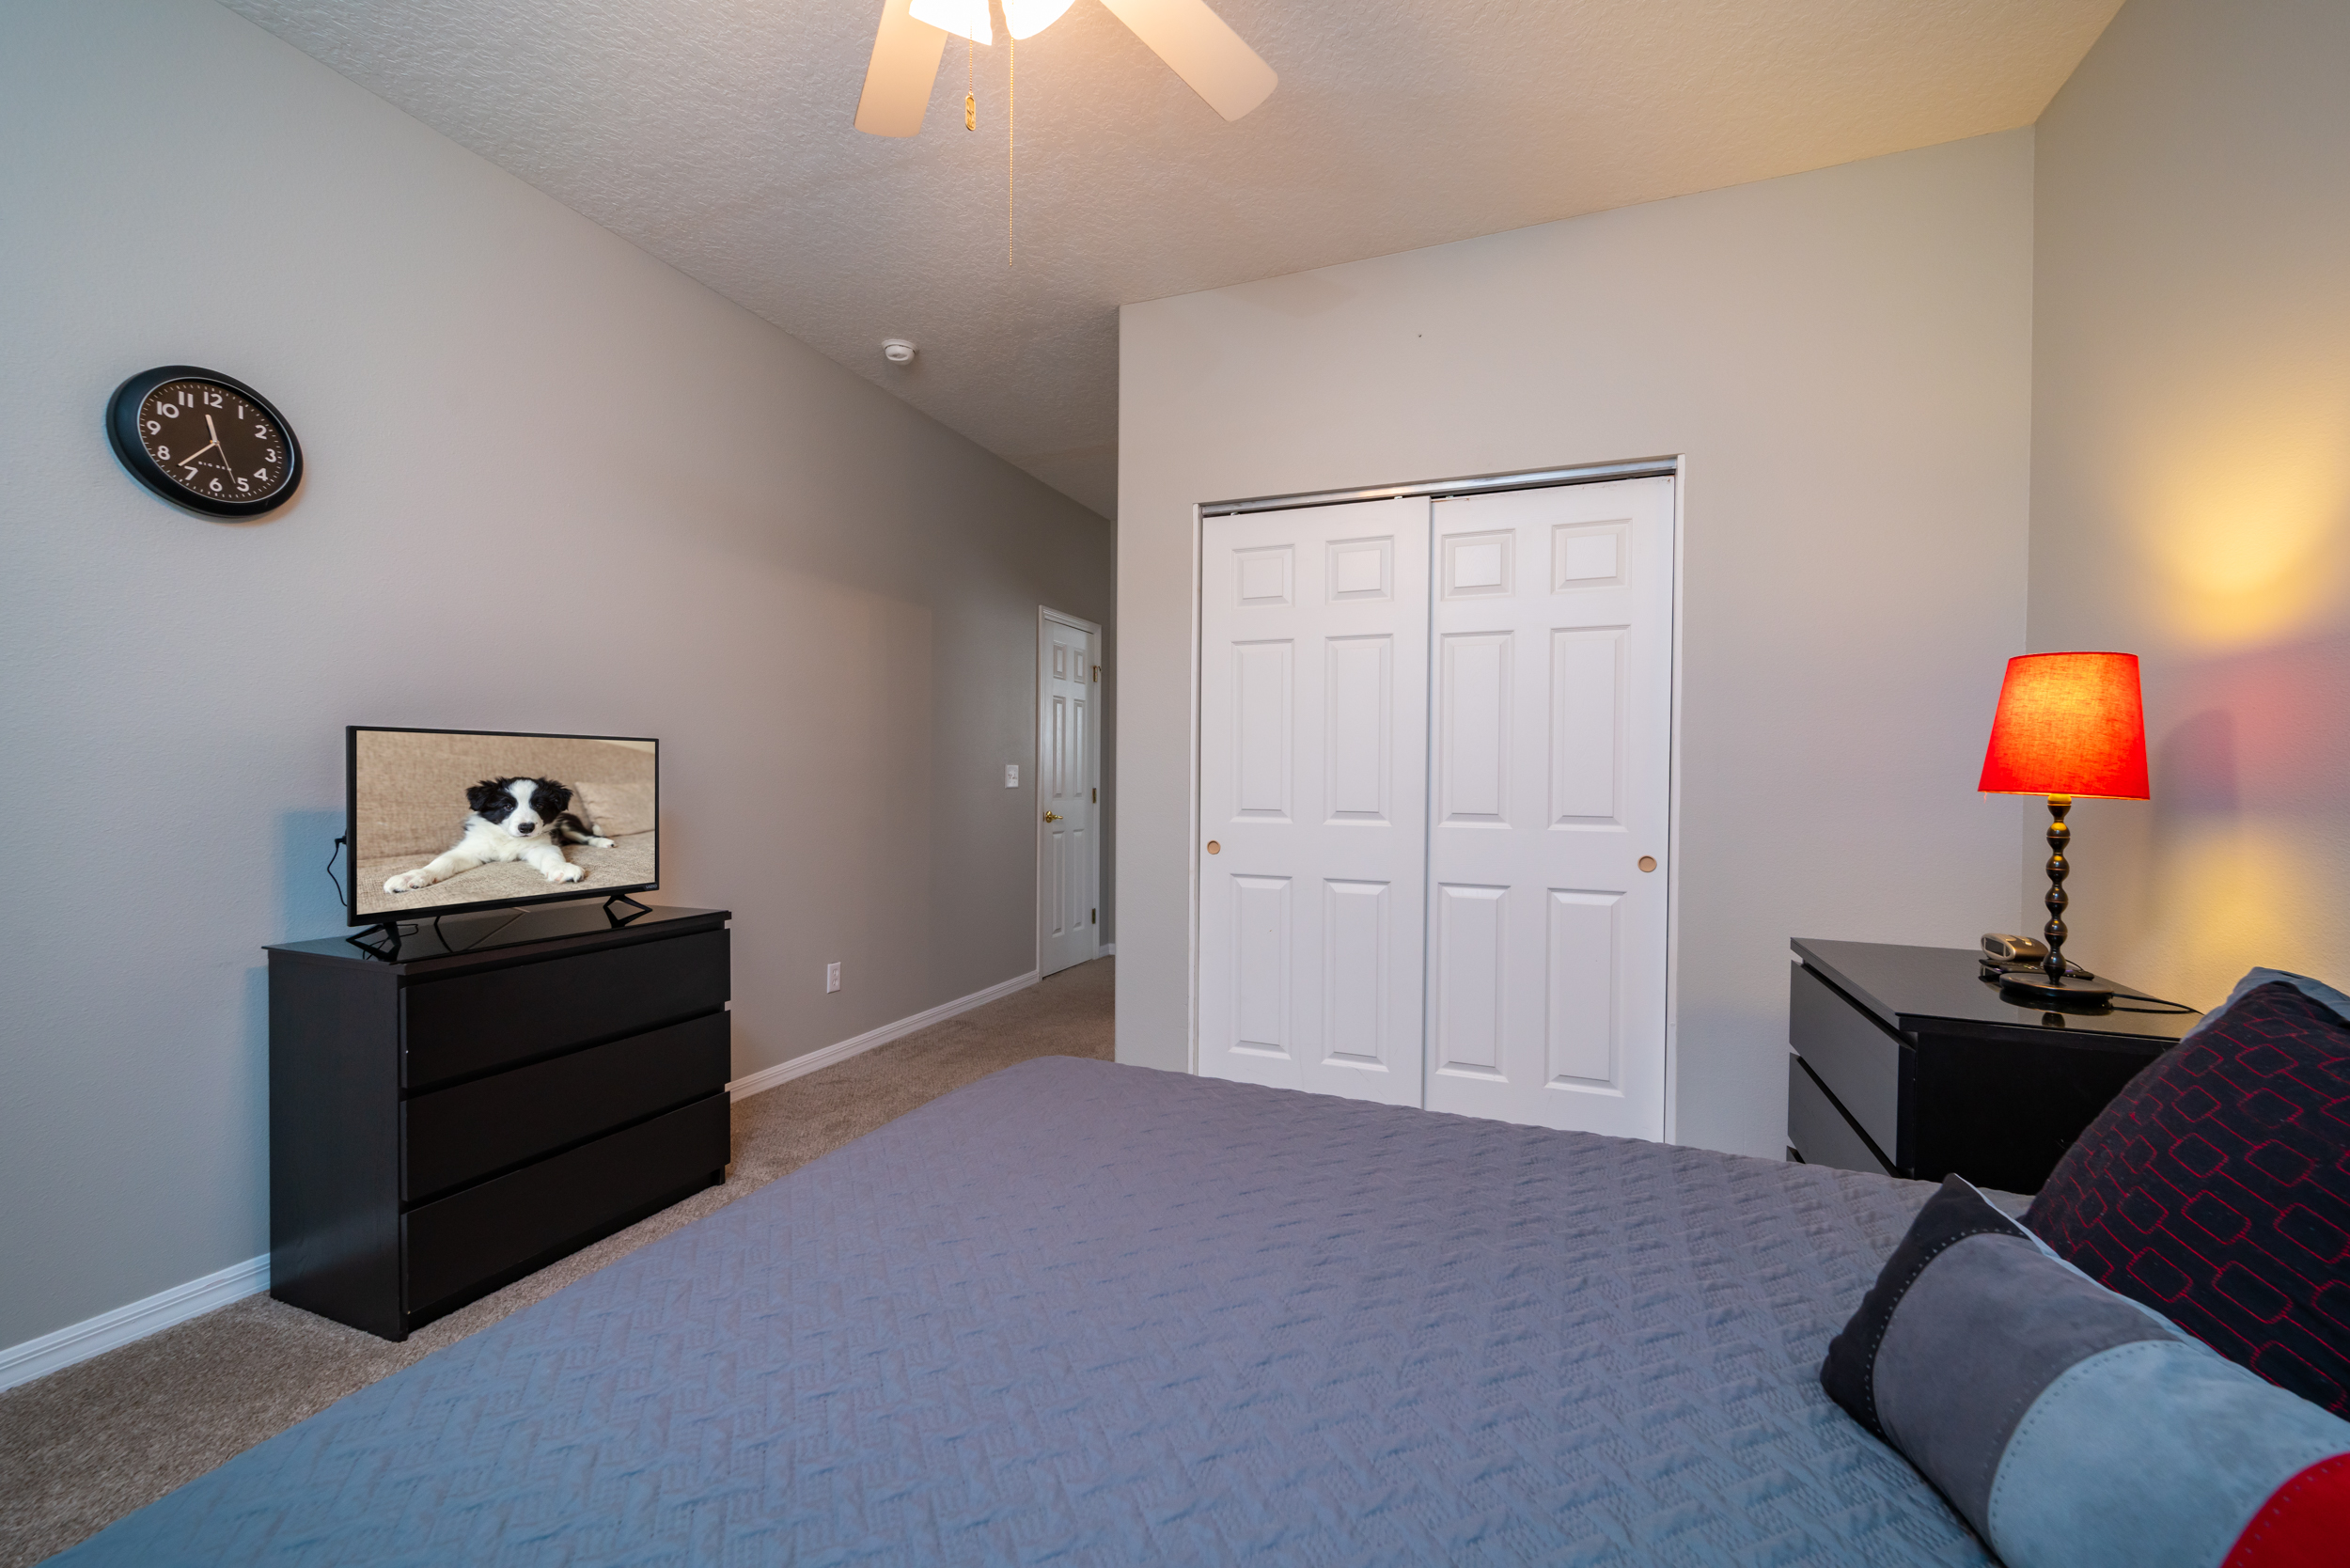 Alternate view of bedroom 2 showing flatscreen and double closet